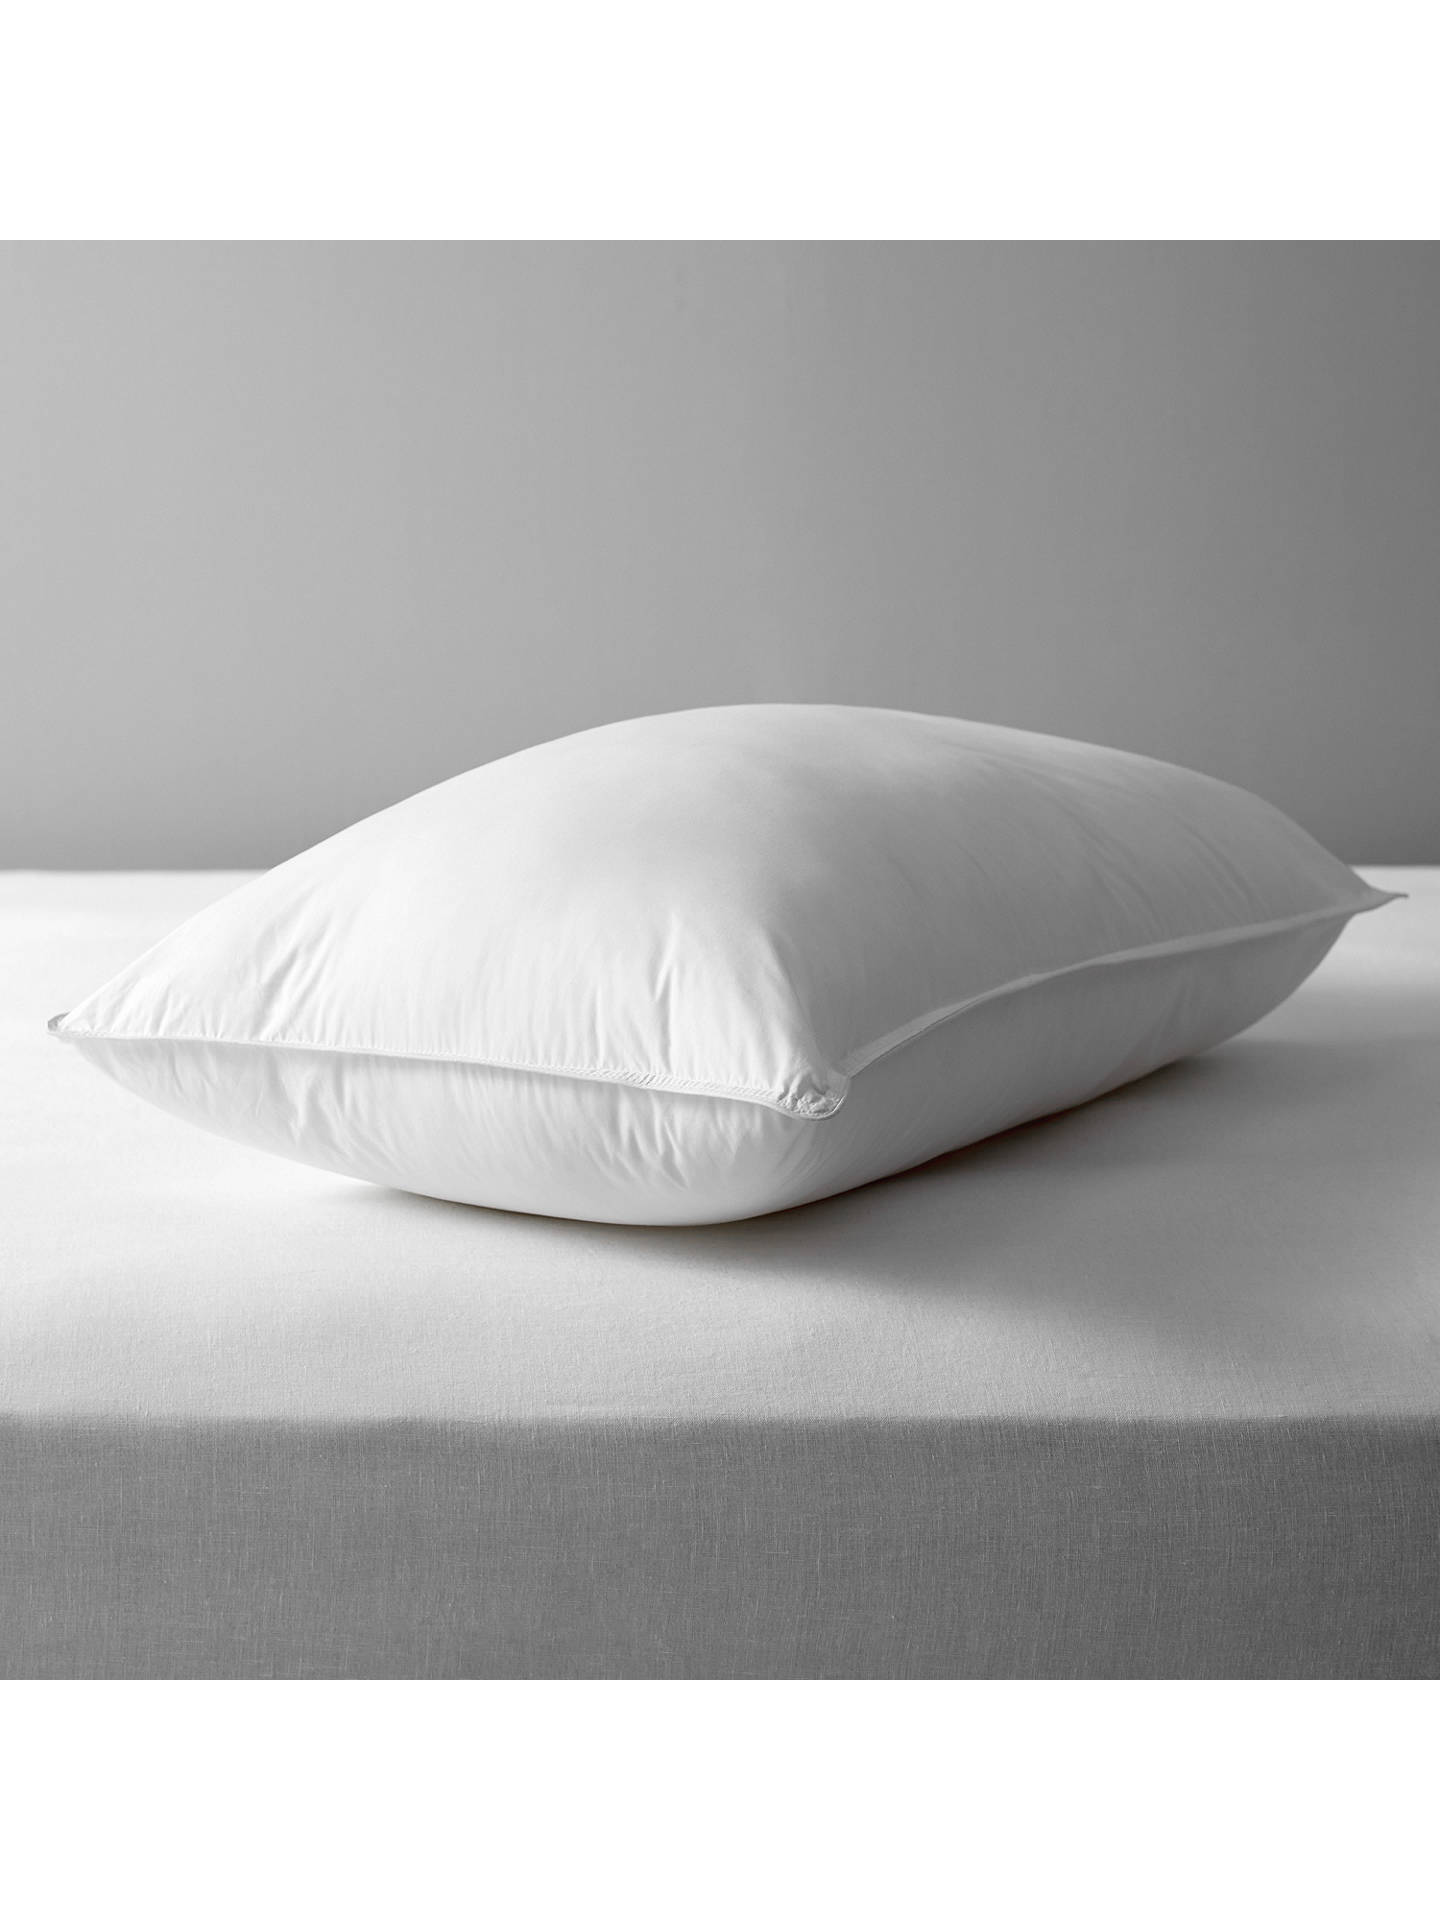 BuyJohn Lewis & Partners Synthetic Soft Like Down Standard Pillow, Soft/Medium Online at johnlewis.com